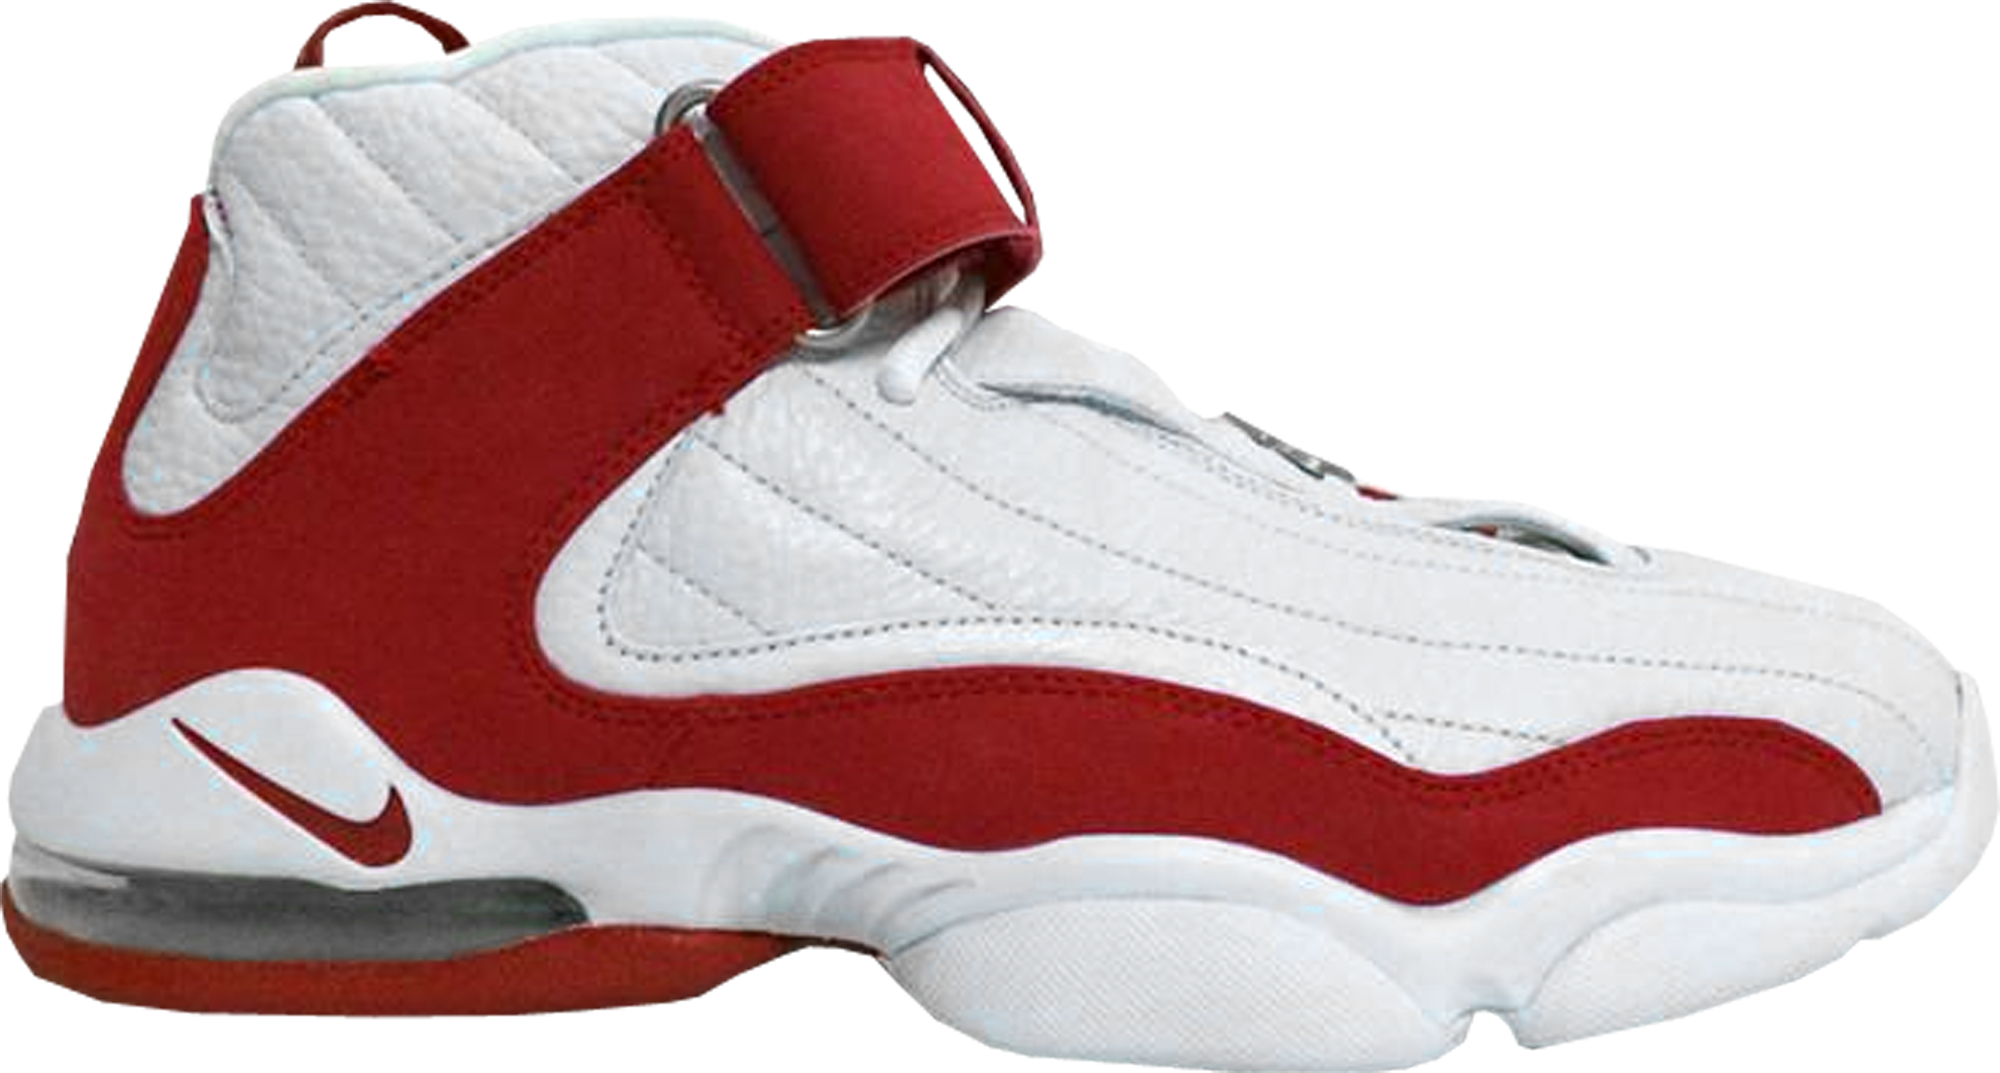 Nike Air Penny IV White Red - 312455-161